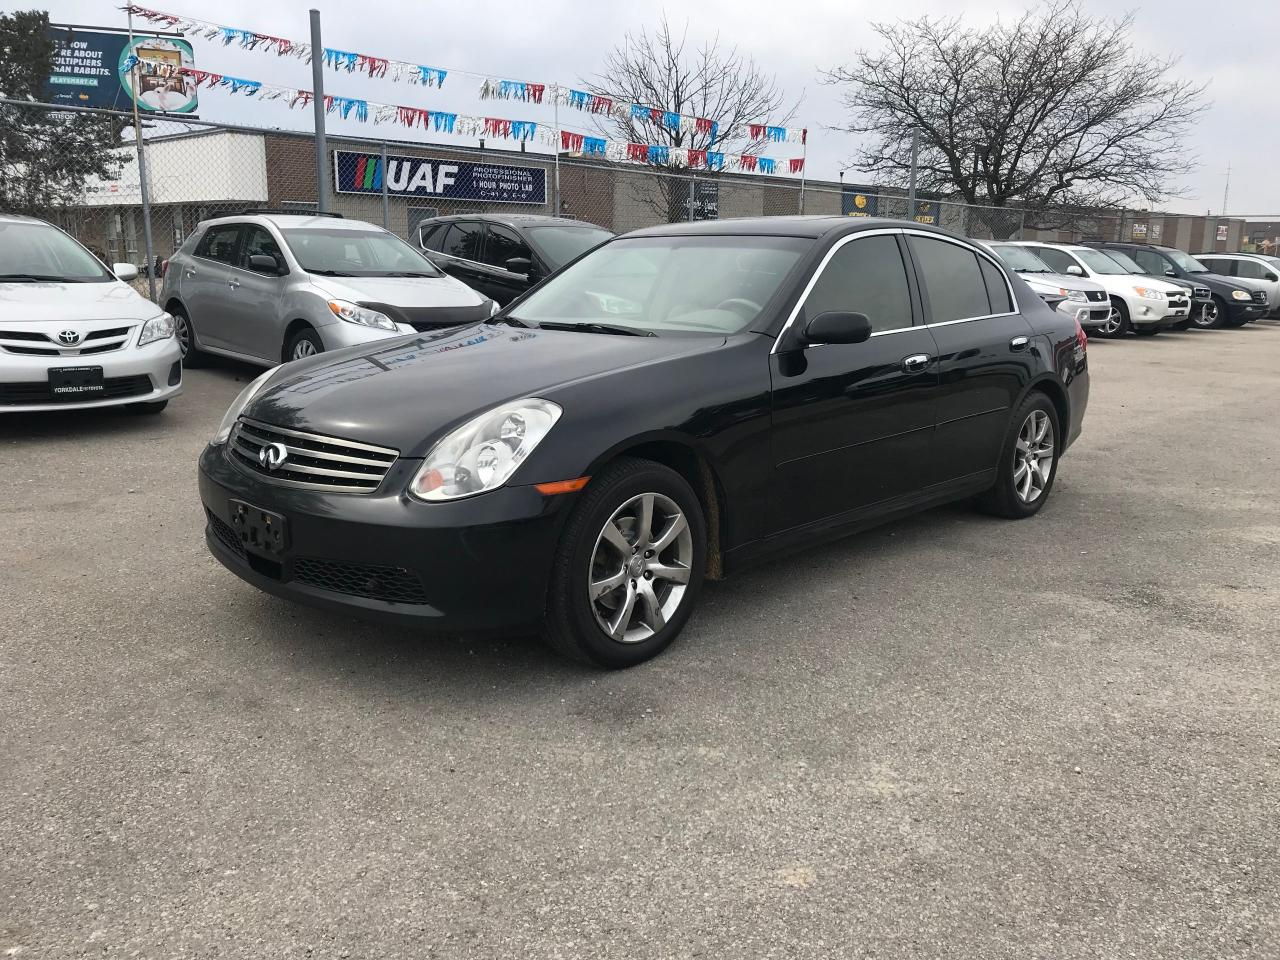 small resolution of used 2005 infiniti g35x auto awd 4doors 139k safety 3years warranty includ for sale in toronto ontario carpages ca